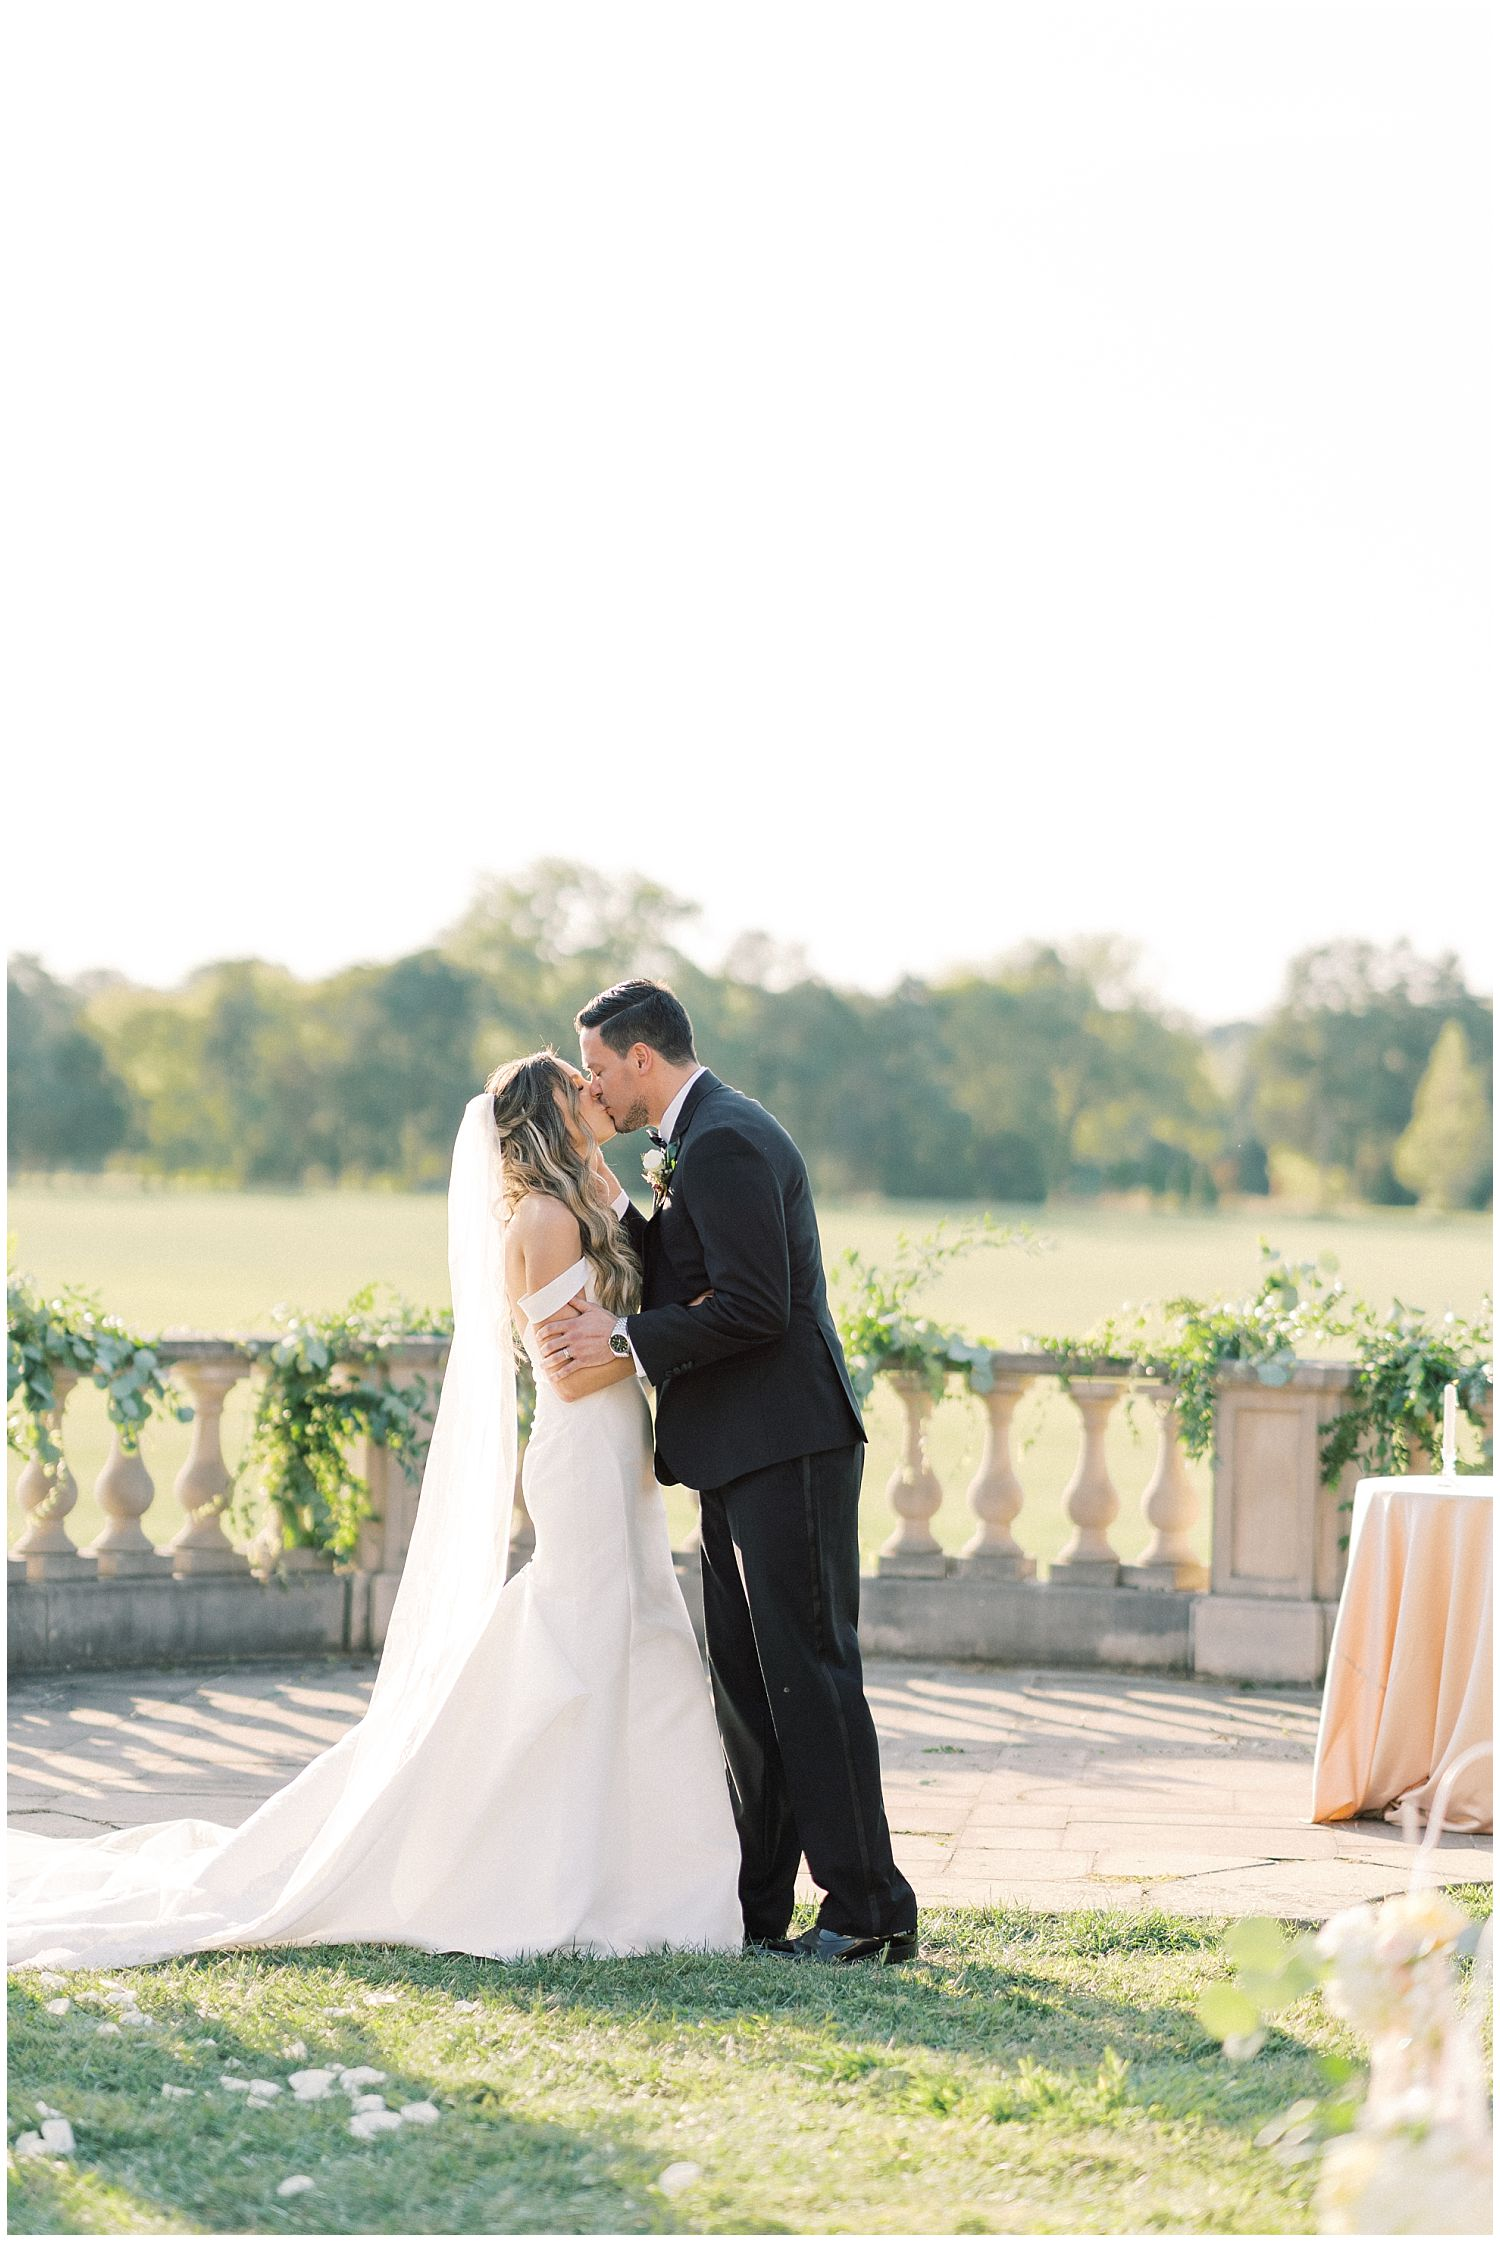 Summer wedding ceremony at Great Marsh Estate in Bealeton, Virginia